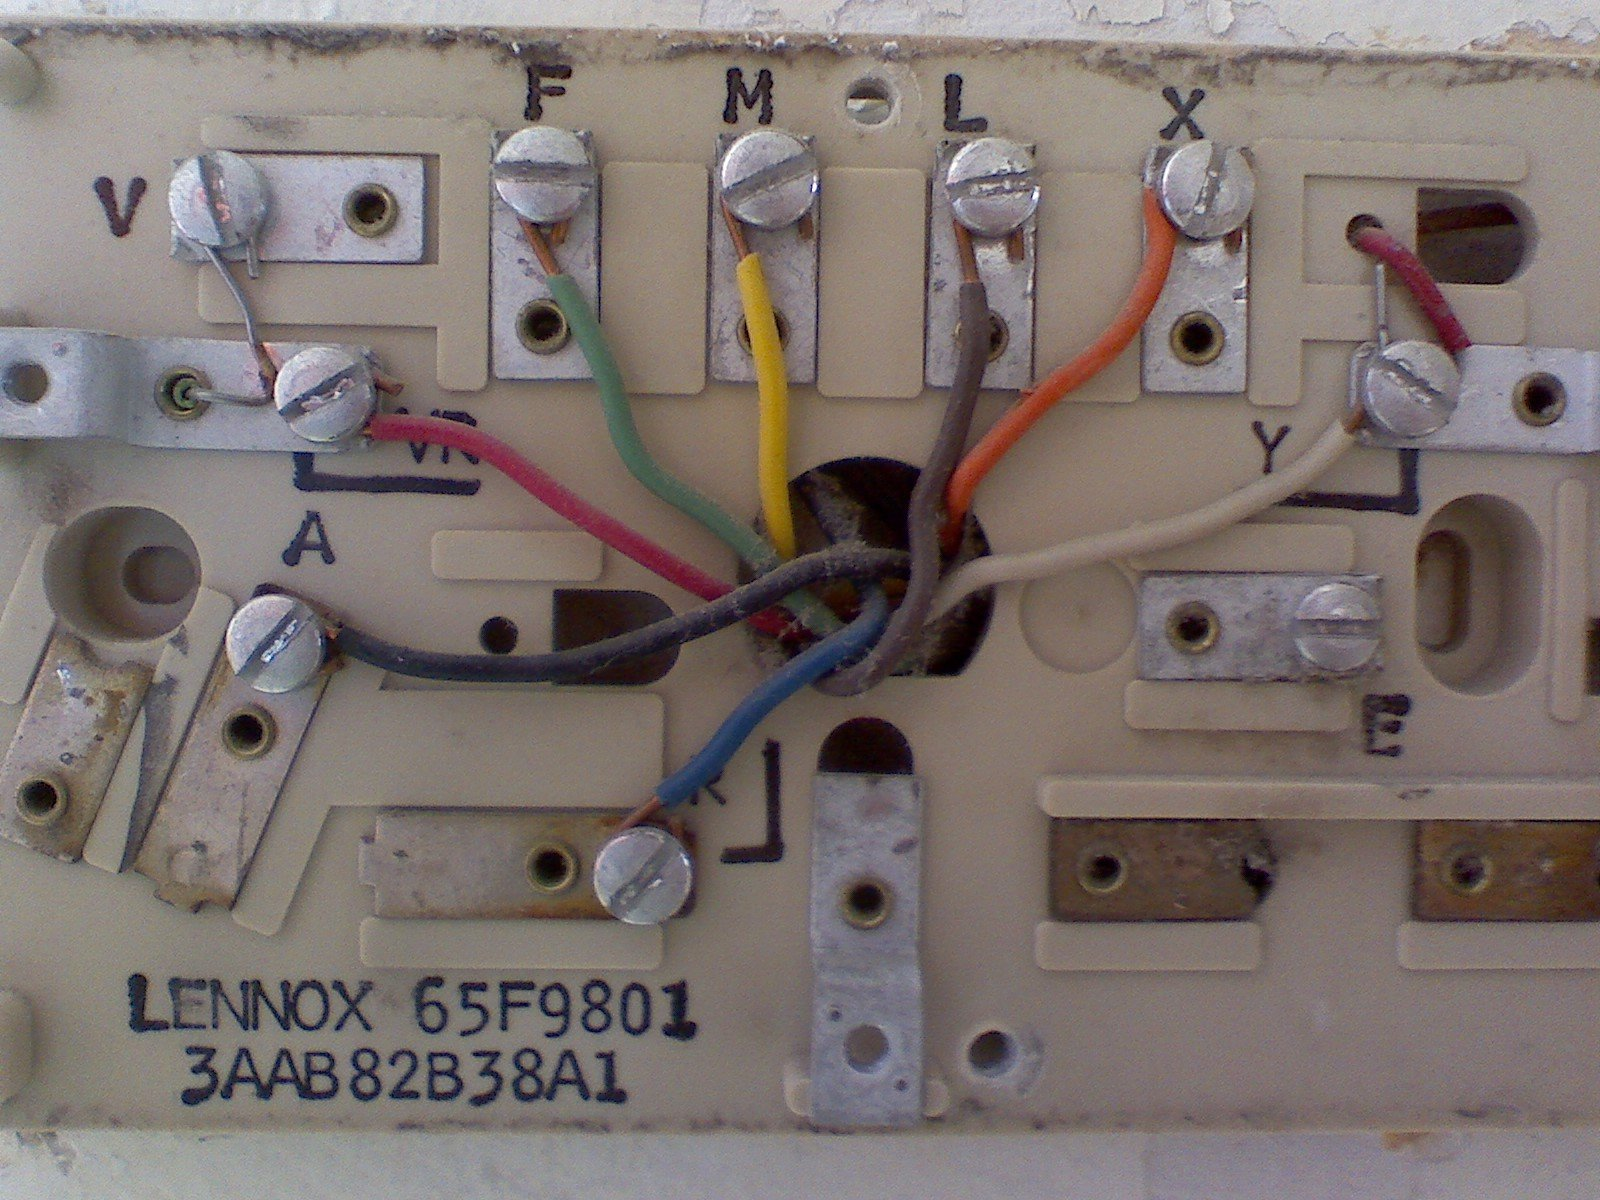 Lennox Thermostat Manuals Wiring Diagram X4147 2019